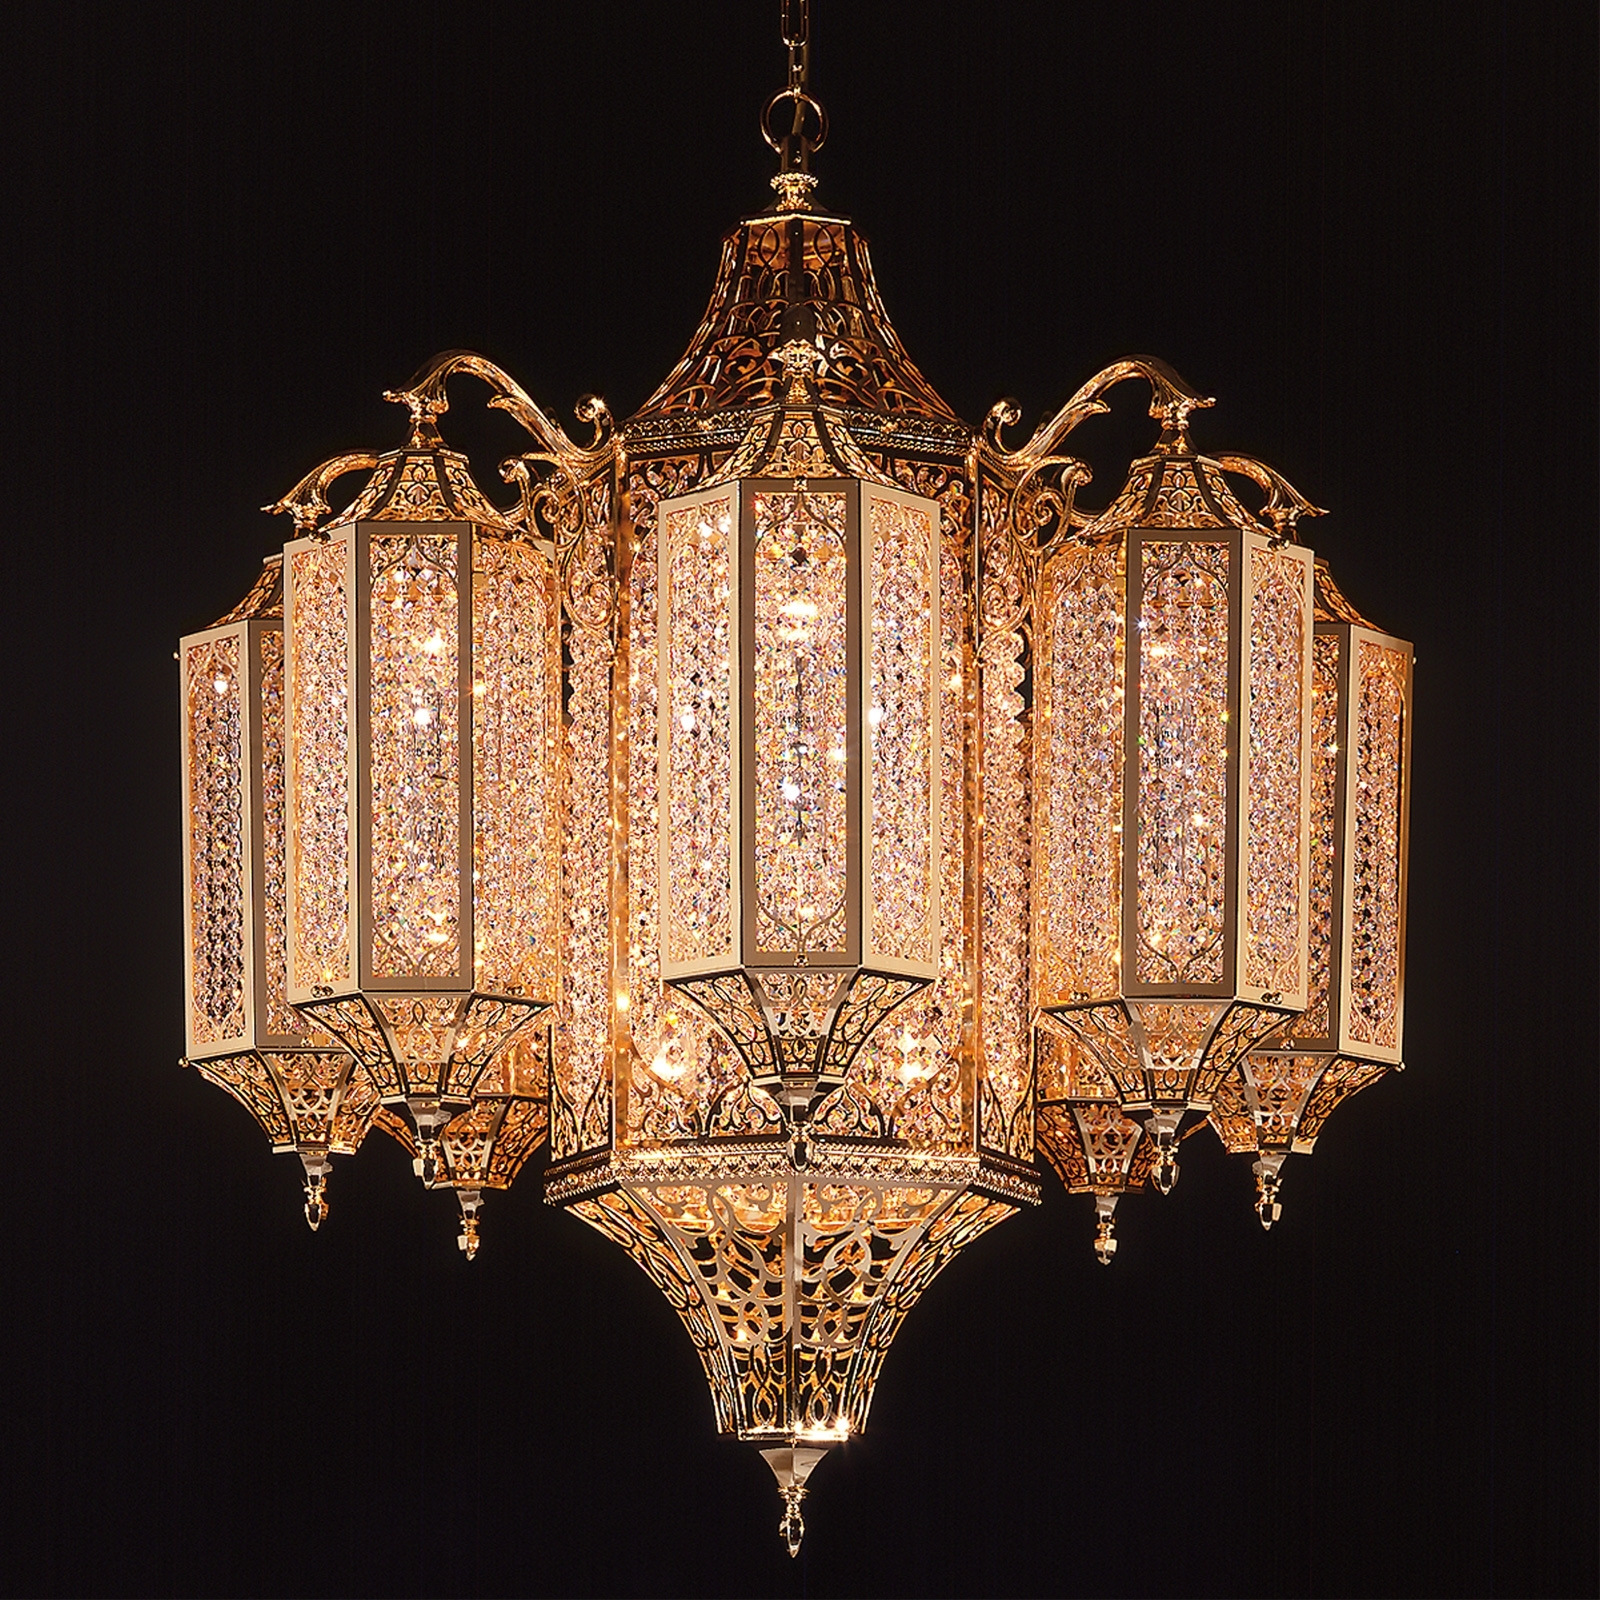 Trendy Expensive Chandeliers Pertaining To Light : Luxuryndeliers Expensivendeliersluxury Crystal Brands And (View 15 of 15)